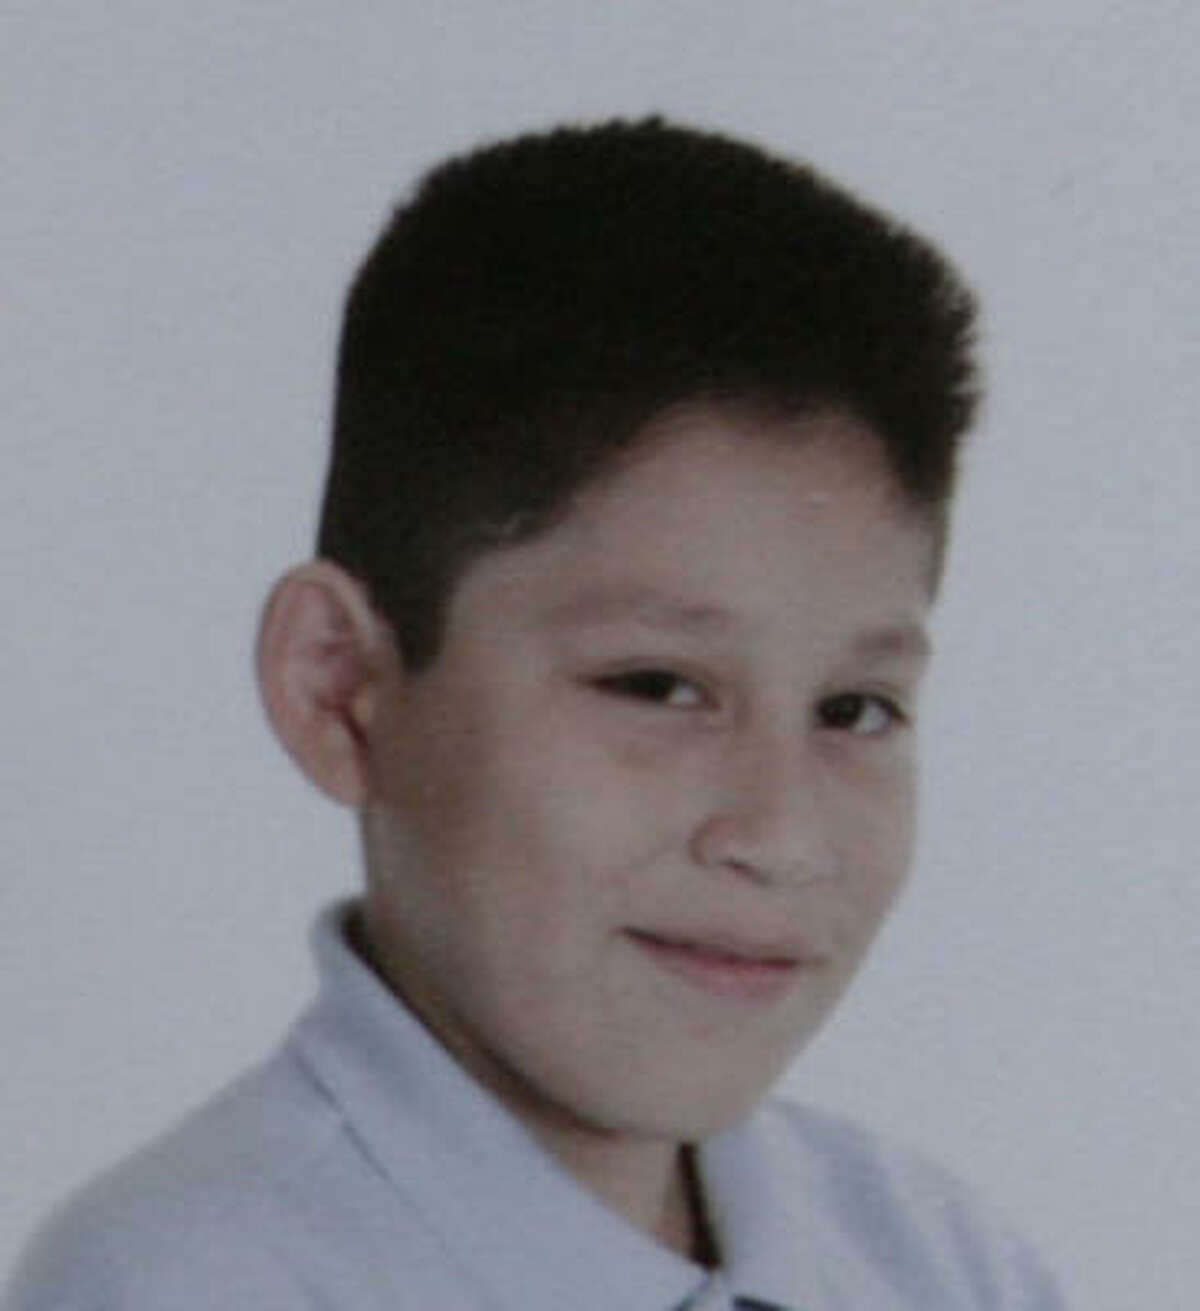 David Vazquez, 10, was killed in the accident.